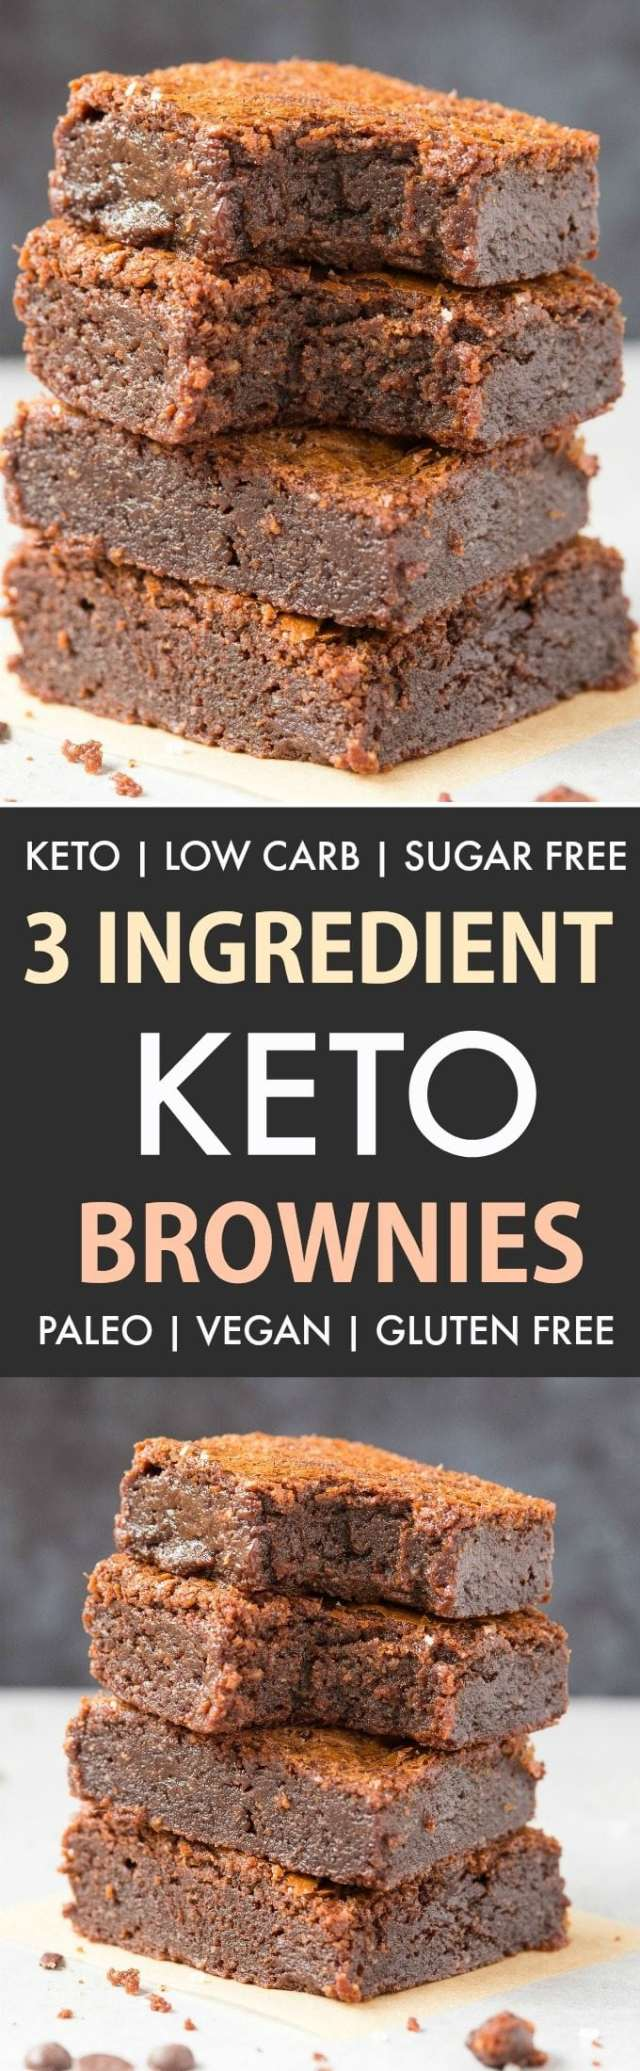 Easy 3-Ingredient Keto Low Carb brownies in a collage